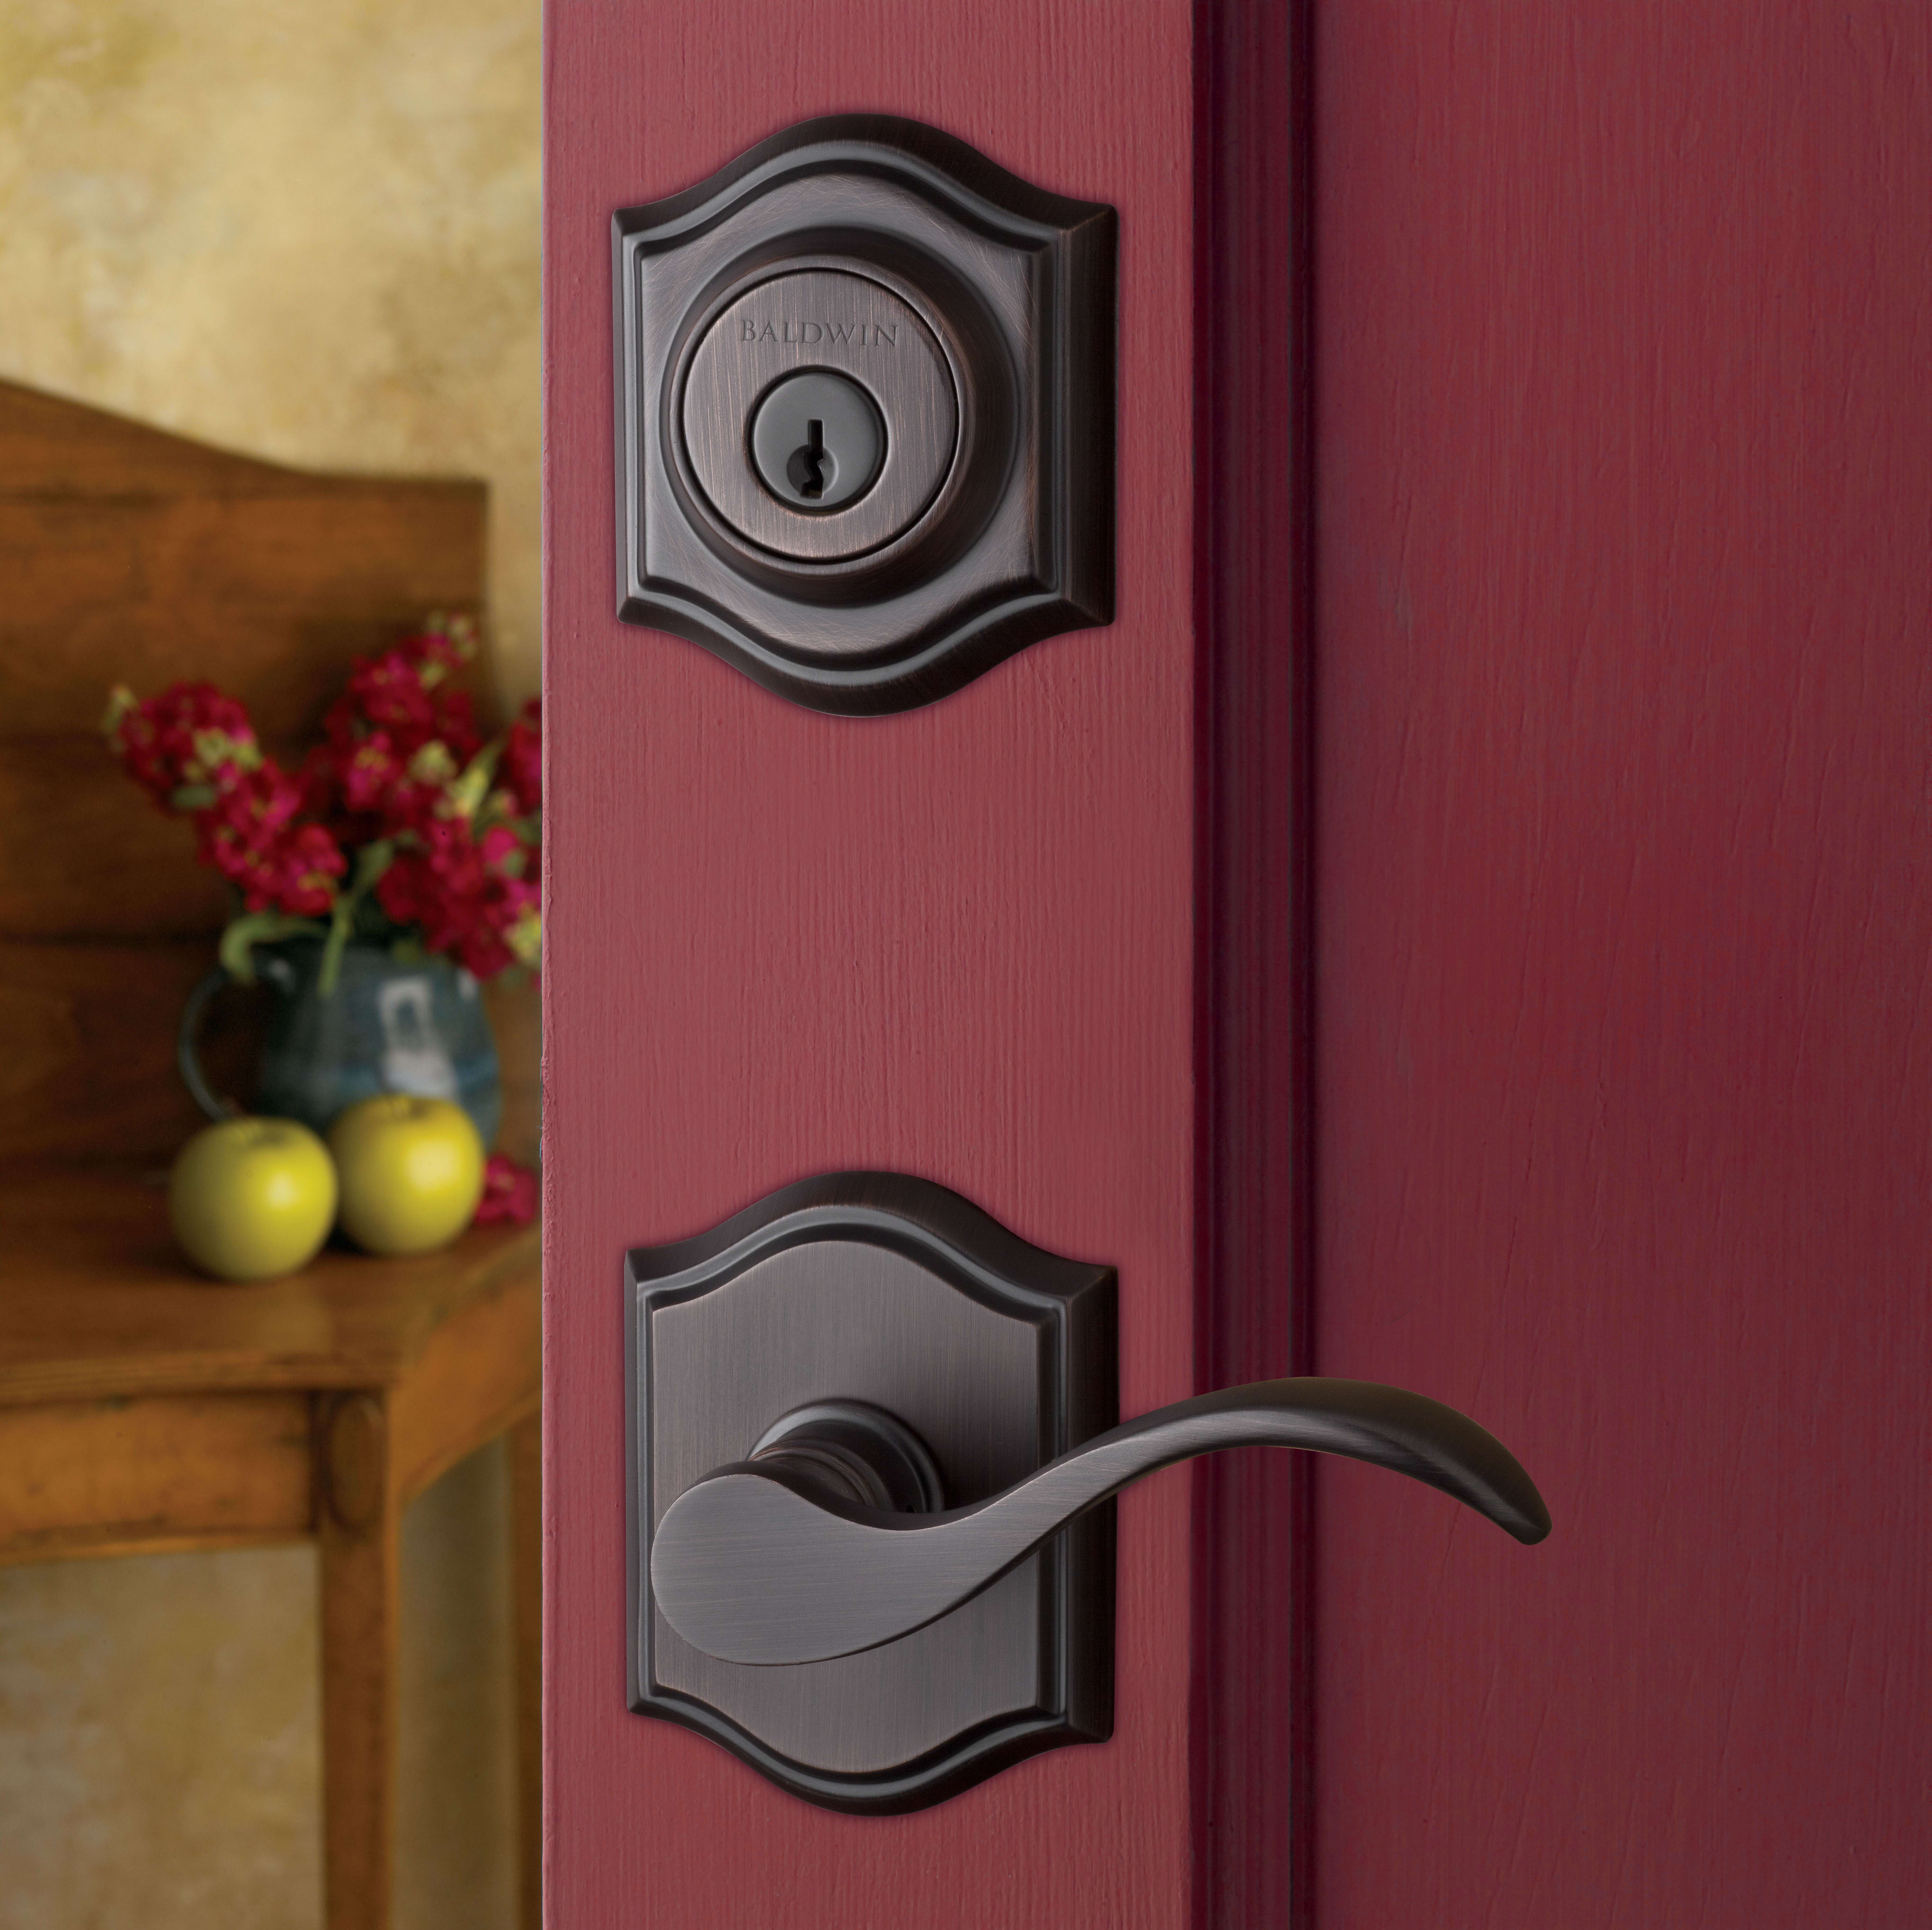 handlesets baldwin inch fayerman brass collection com door polished nickel the severin cabinet from estate hardware satin knob square